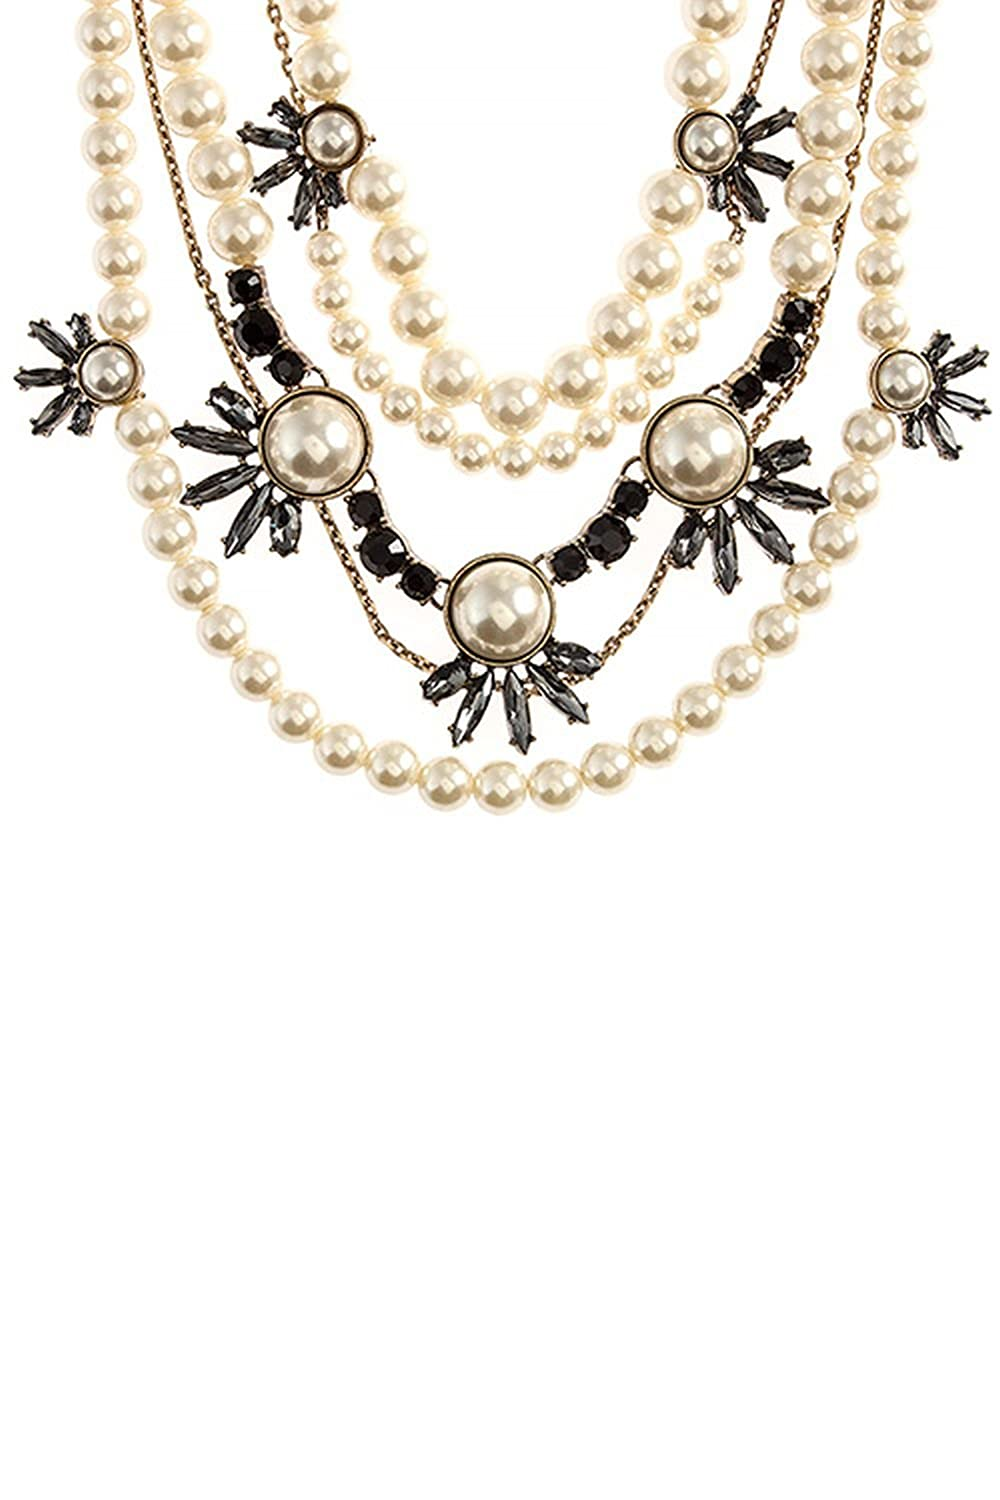 KARMAS CANVAS CRYSTAL FLORAL LAYERED FAUX PEARL NECKLACE SET